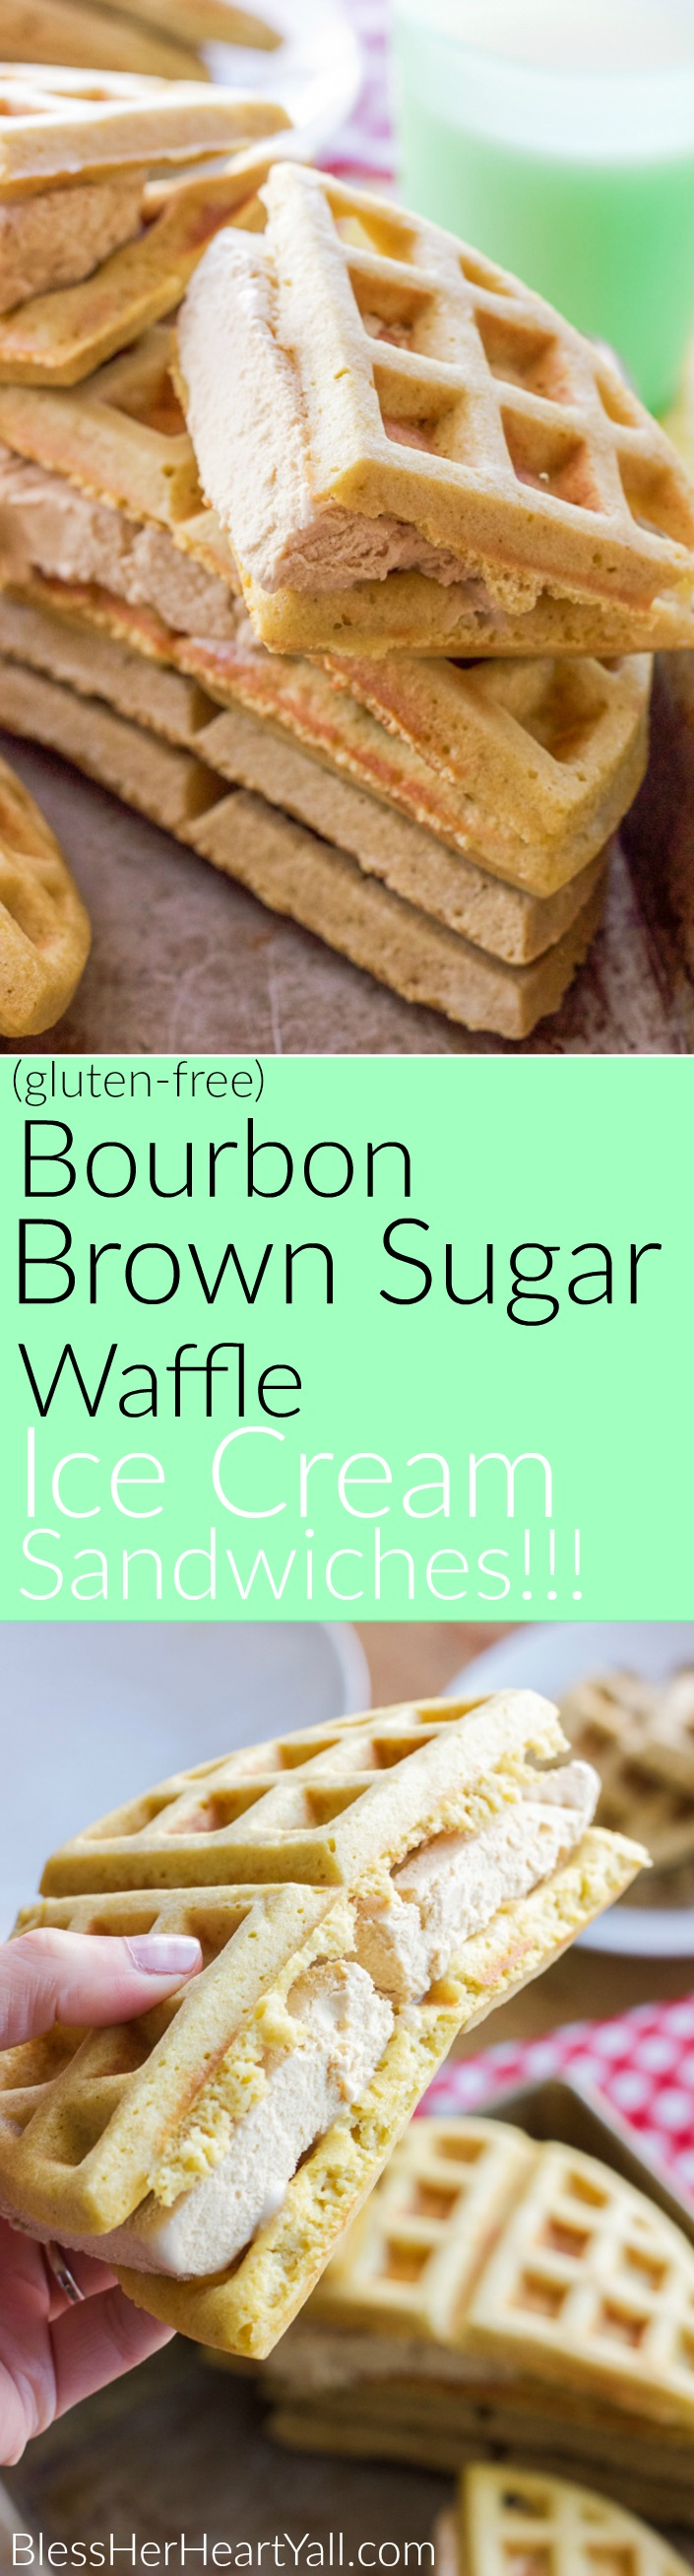 Bourbon brown sugar ice cream is placed between two fresh gluten-free ...